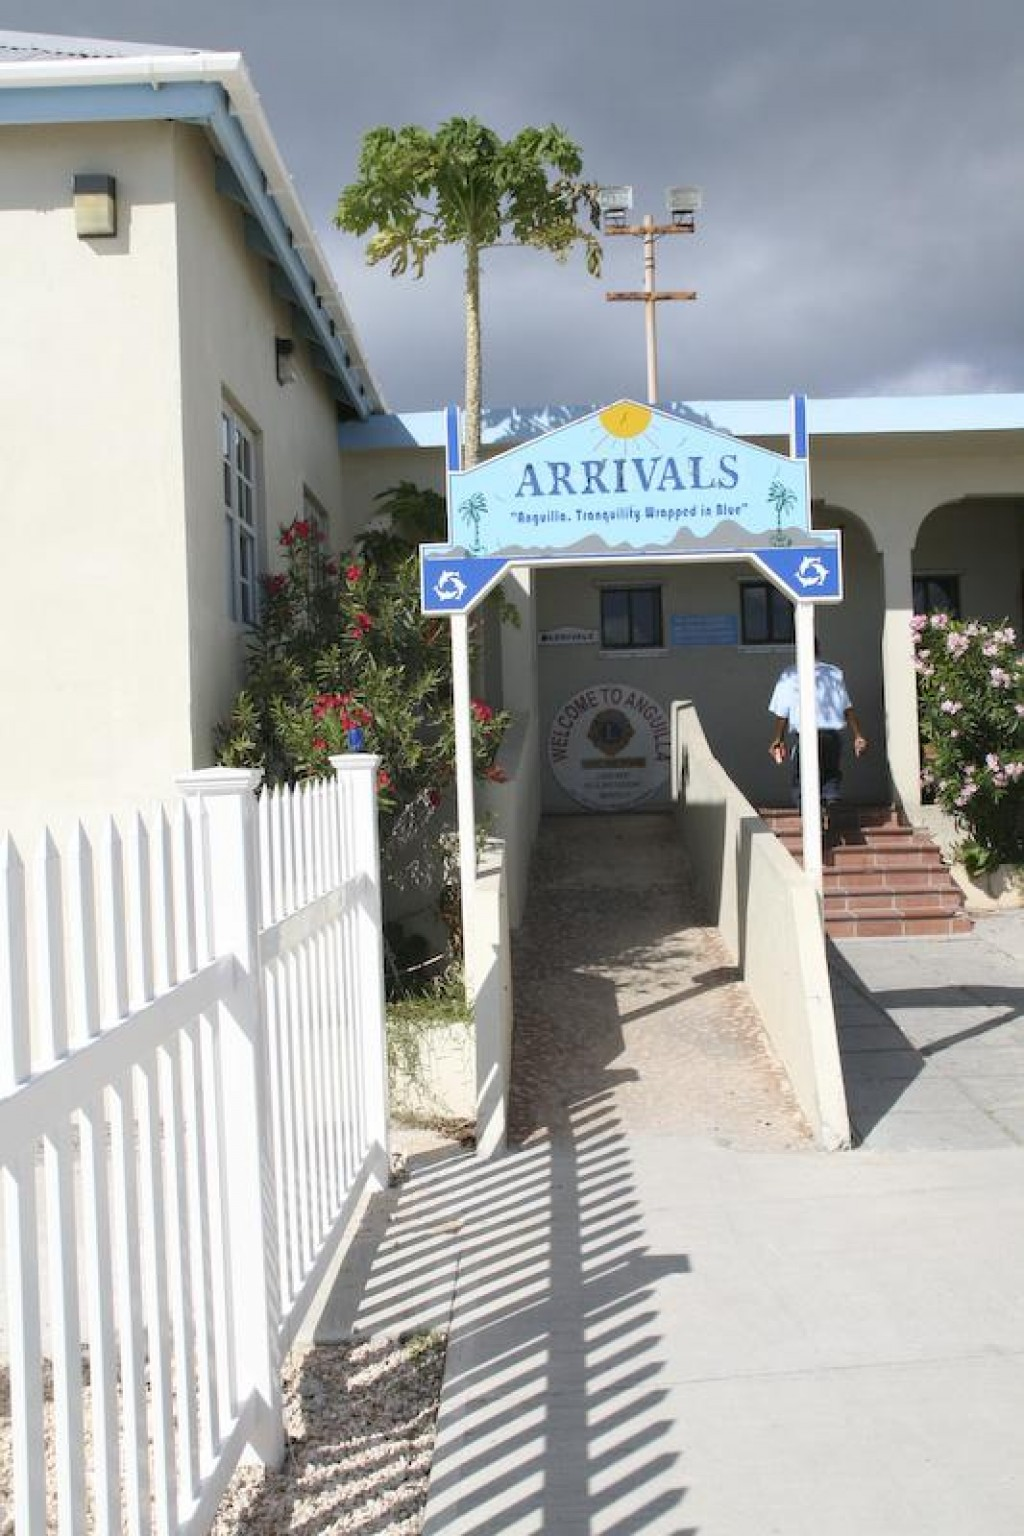 Customs/Imigration in Anguilla was very easy to get through.